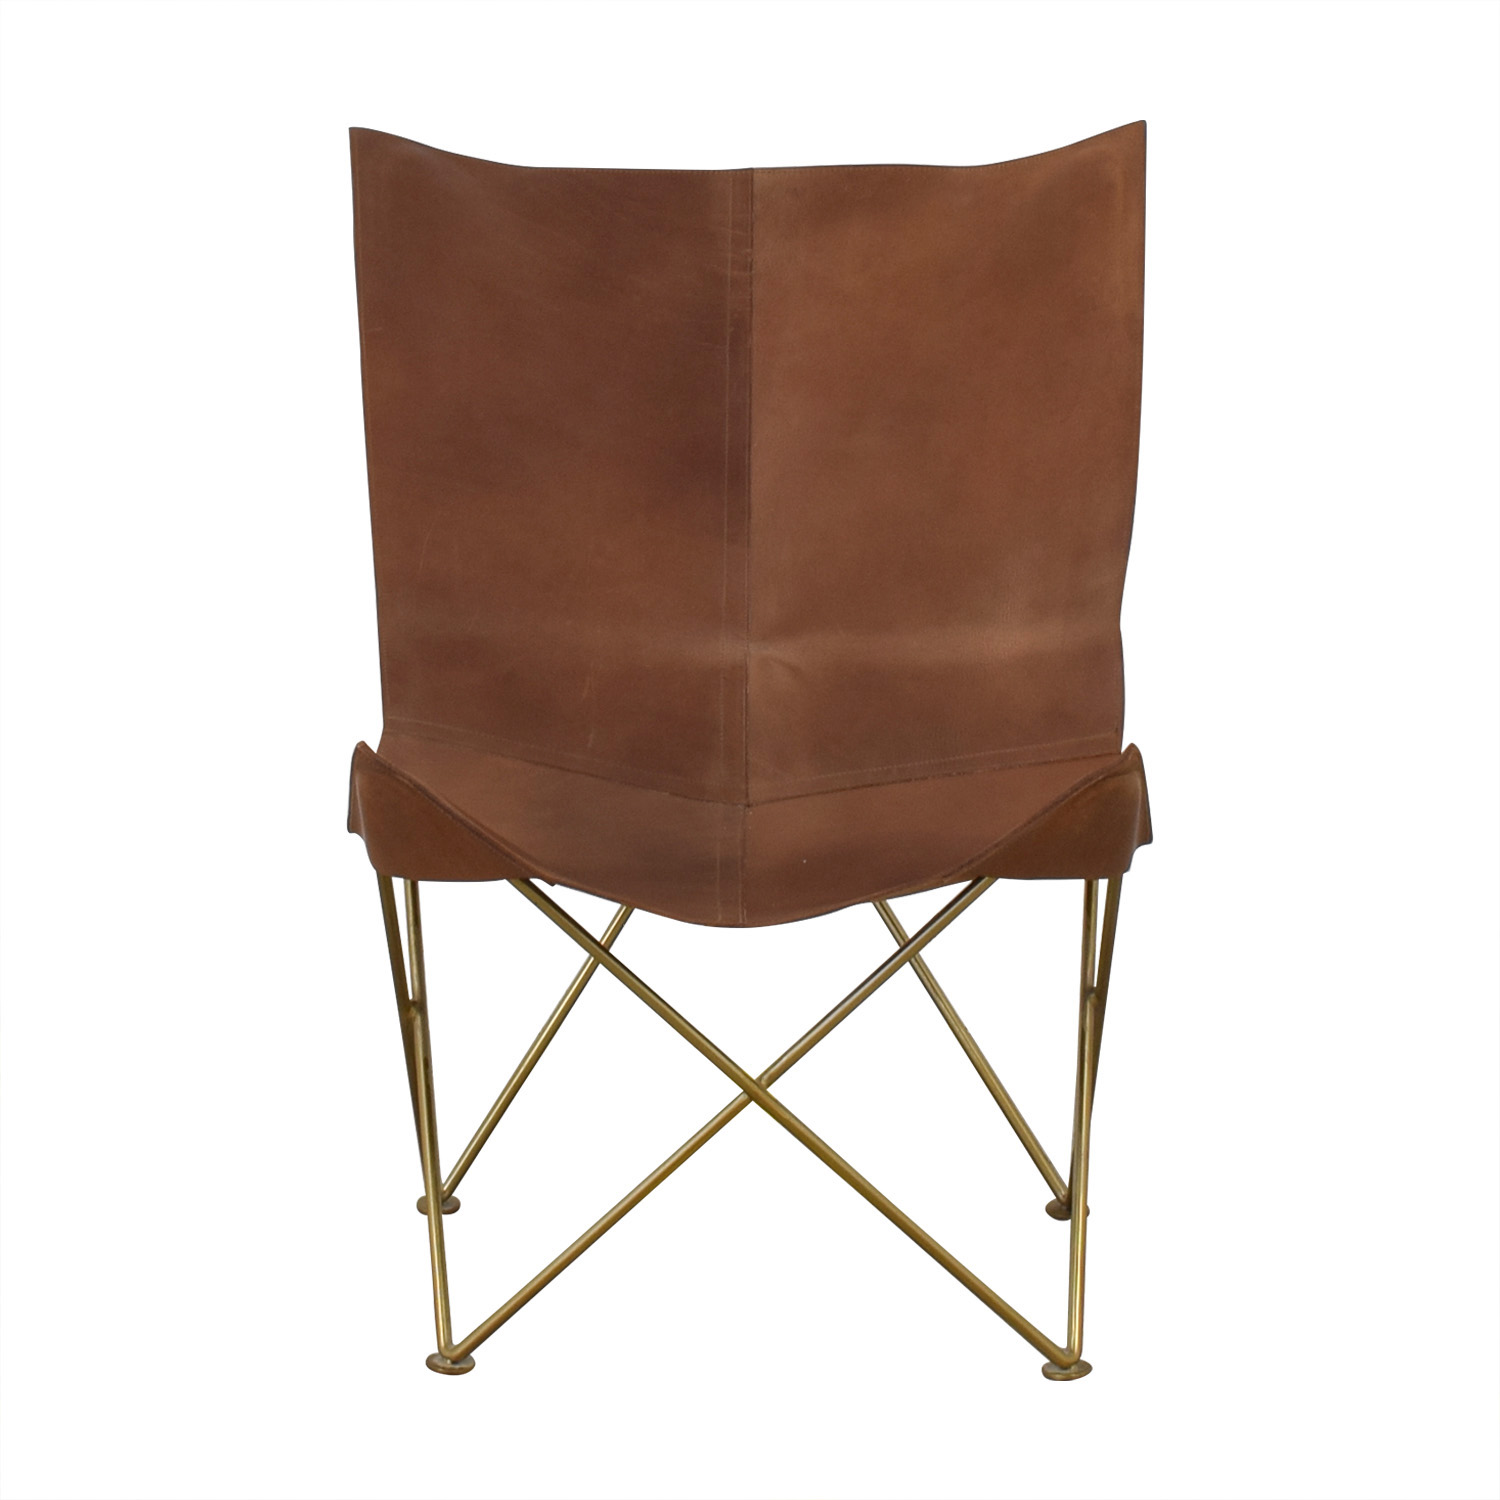 CB2 CB2 Leather Butterfly Chair discount